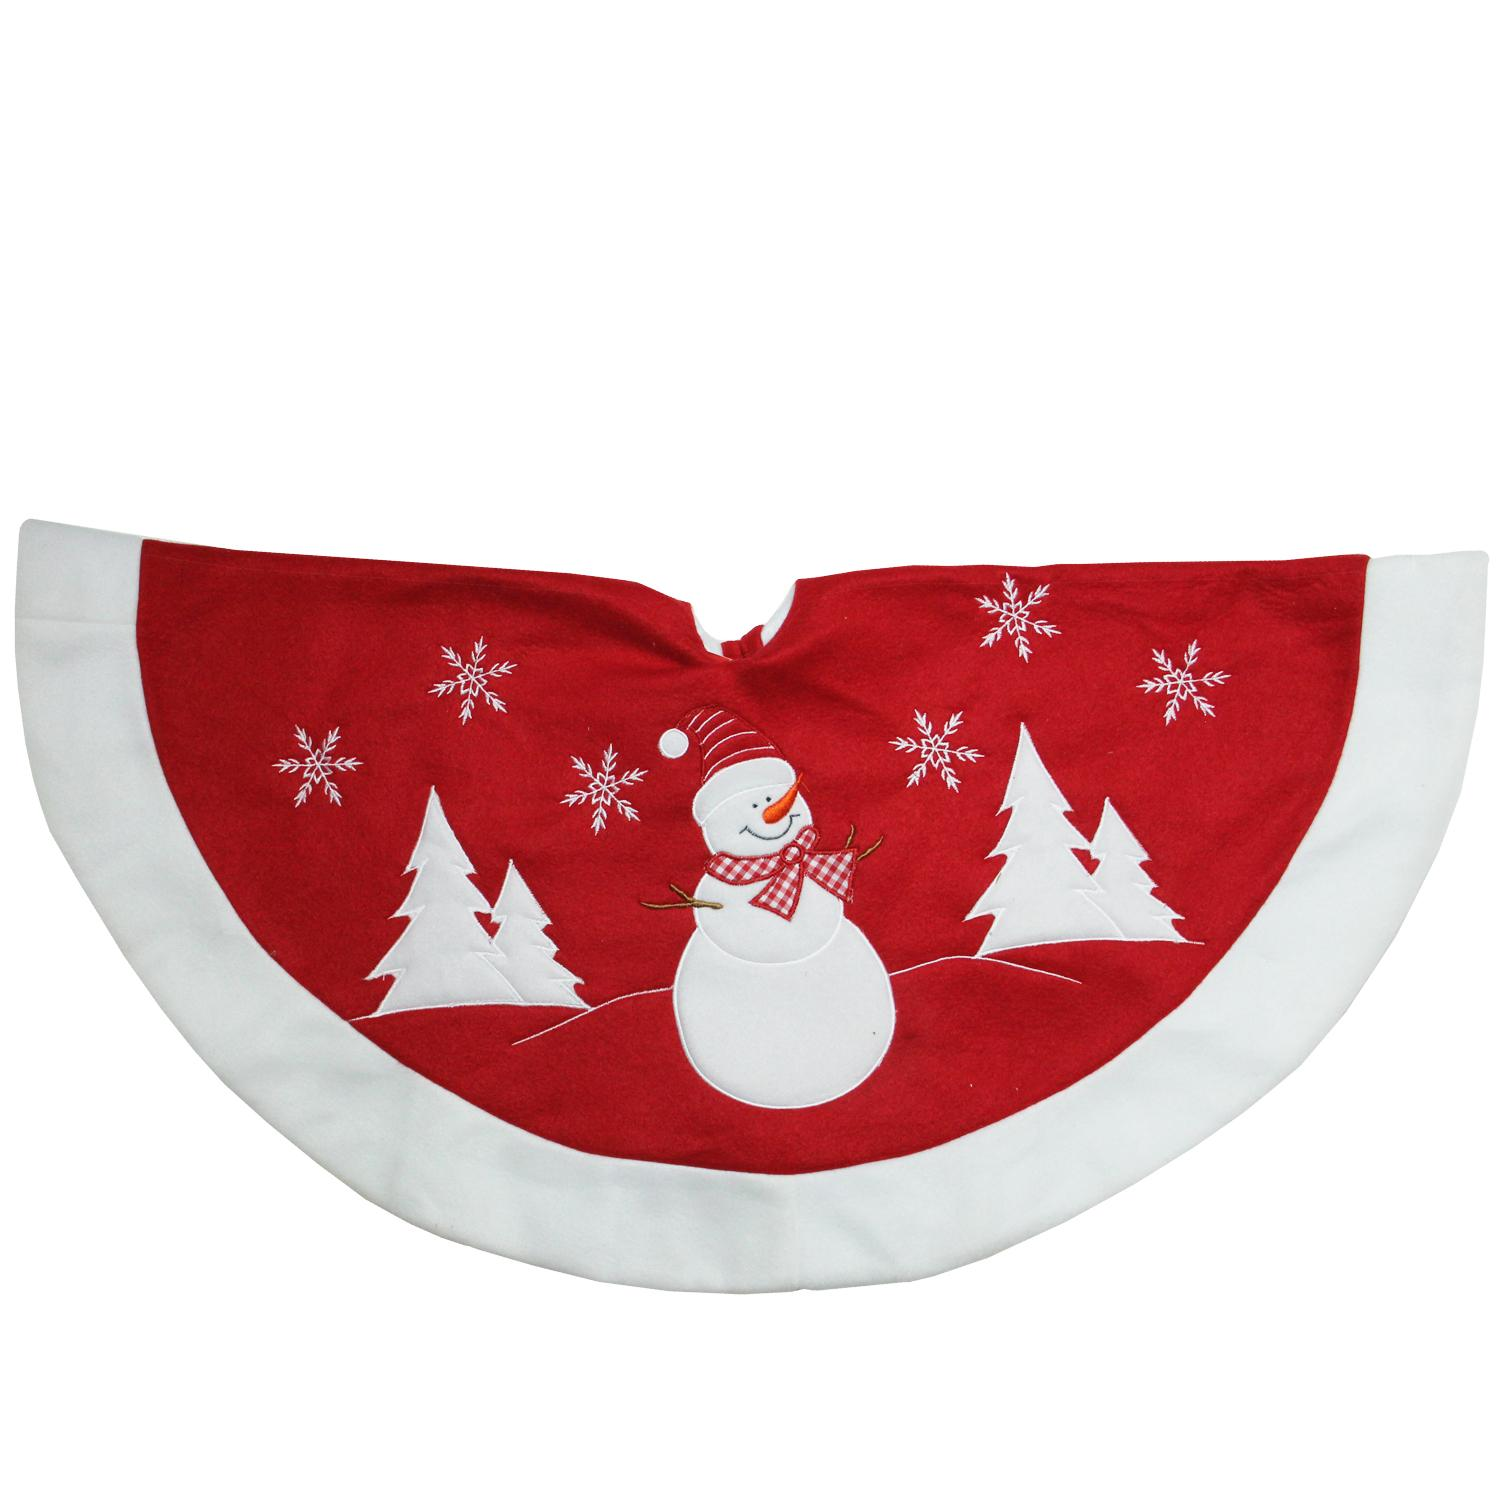 "36"" Red and White Winter Snowman Embroidered Christmas Tree Skirt"